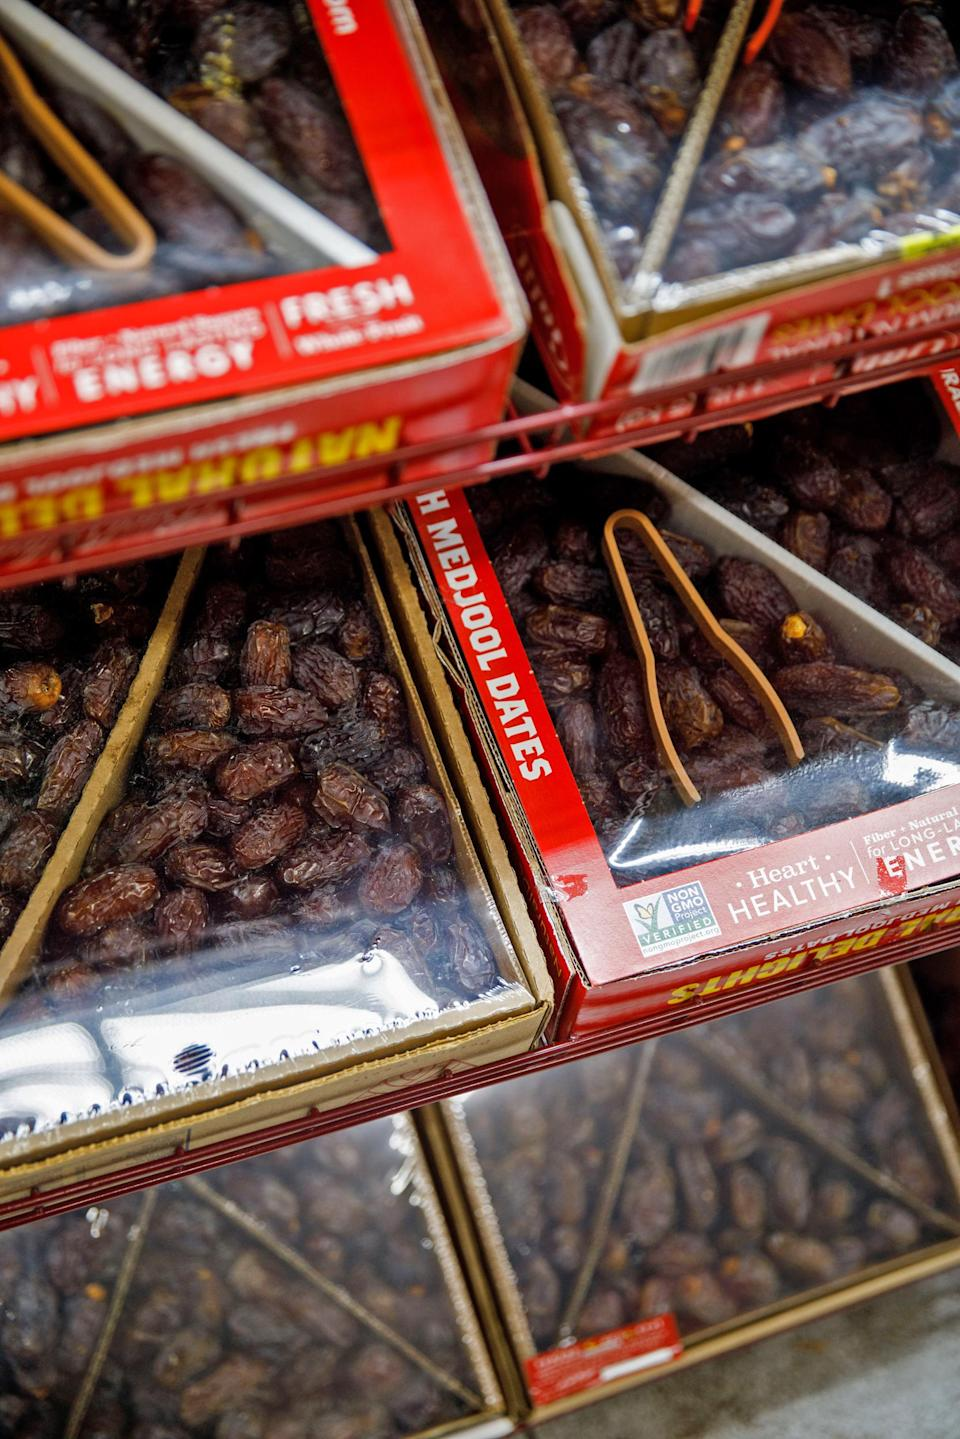 Boxes of dates, a fixture of nightly iftar meals during the holy month of Ramadan, are displayed in the halal grocery store Fertile Crescent in Brooklyn, N.Y., on May 5, 2021. (Julius Constantine Motal / NBC News)